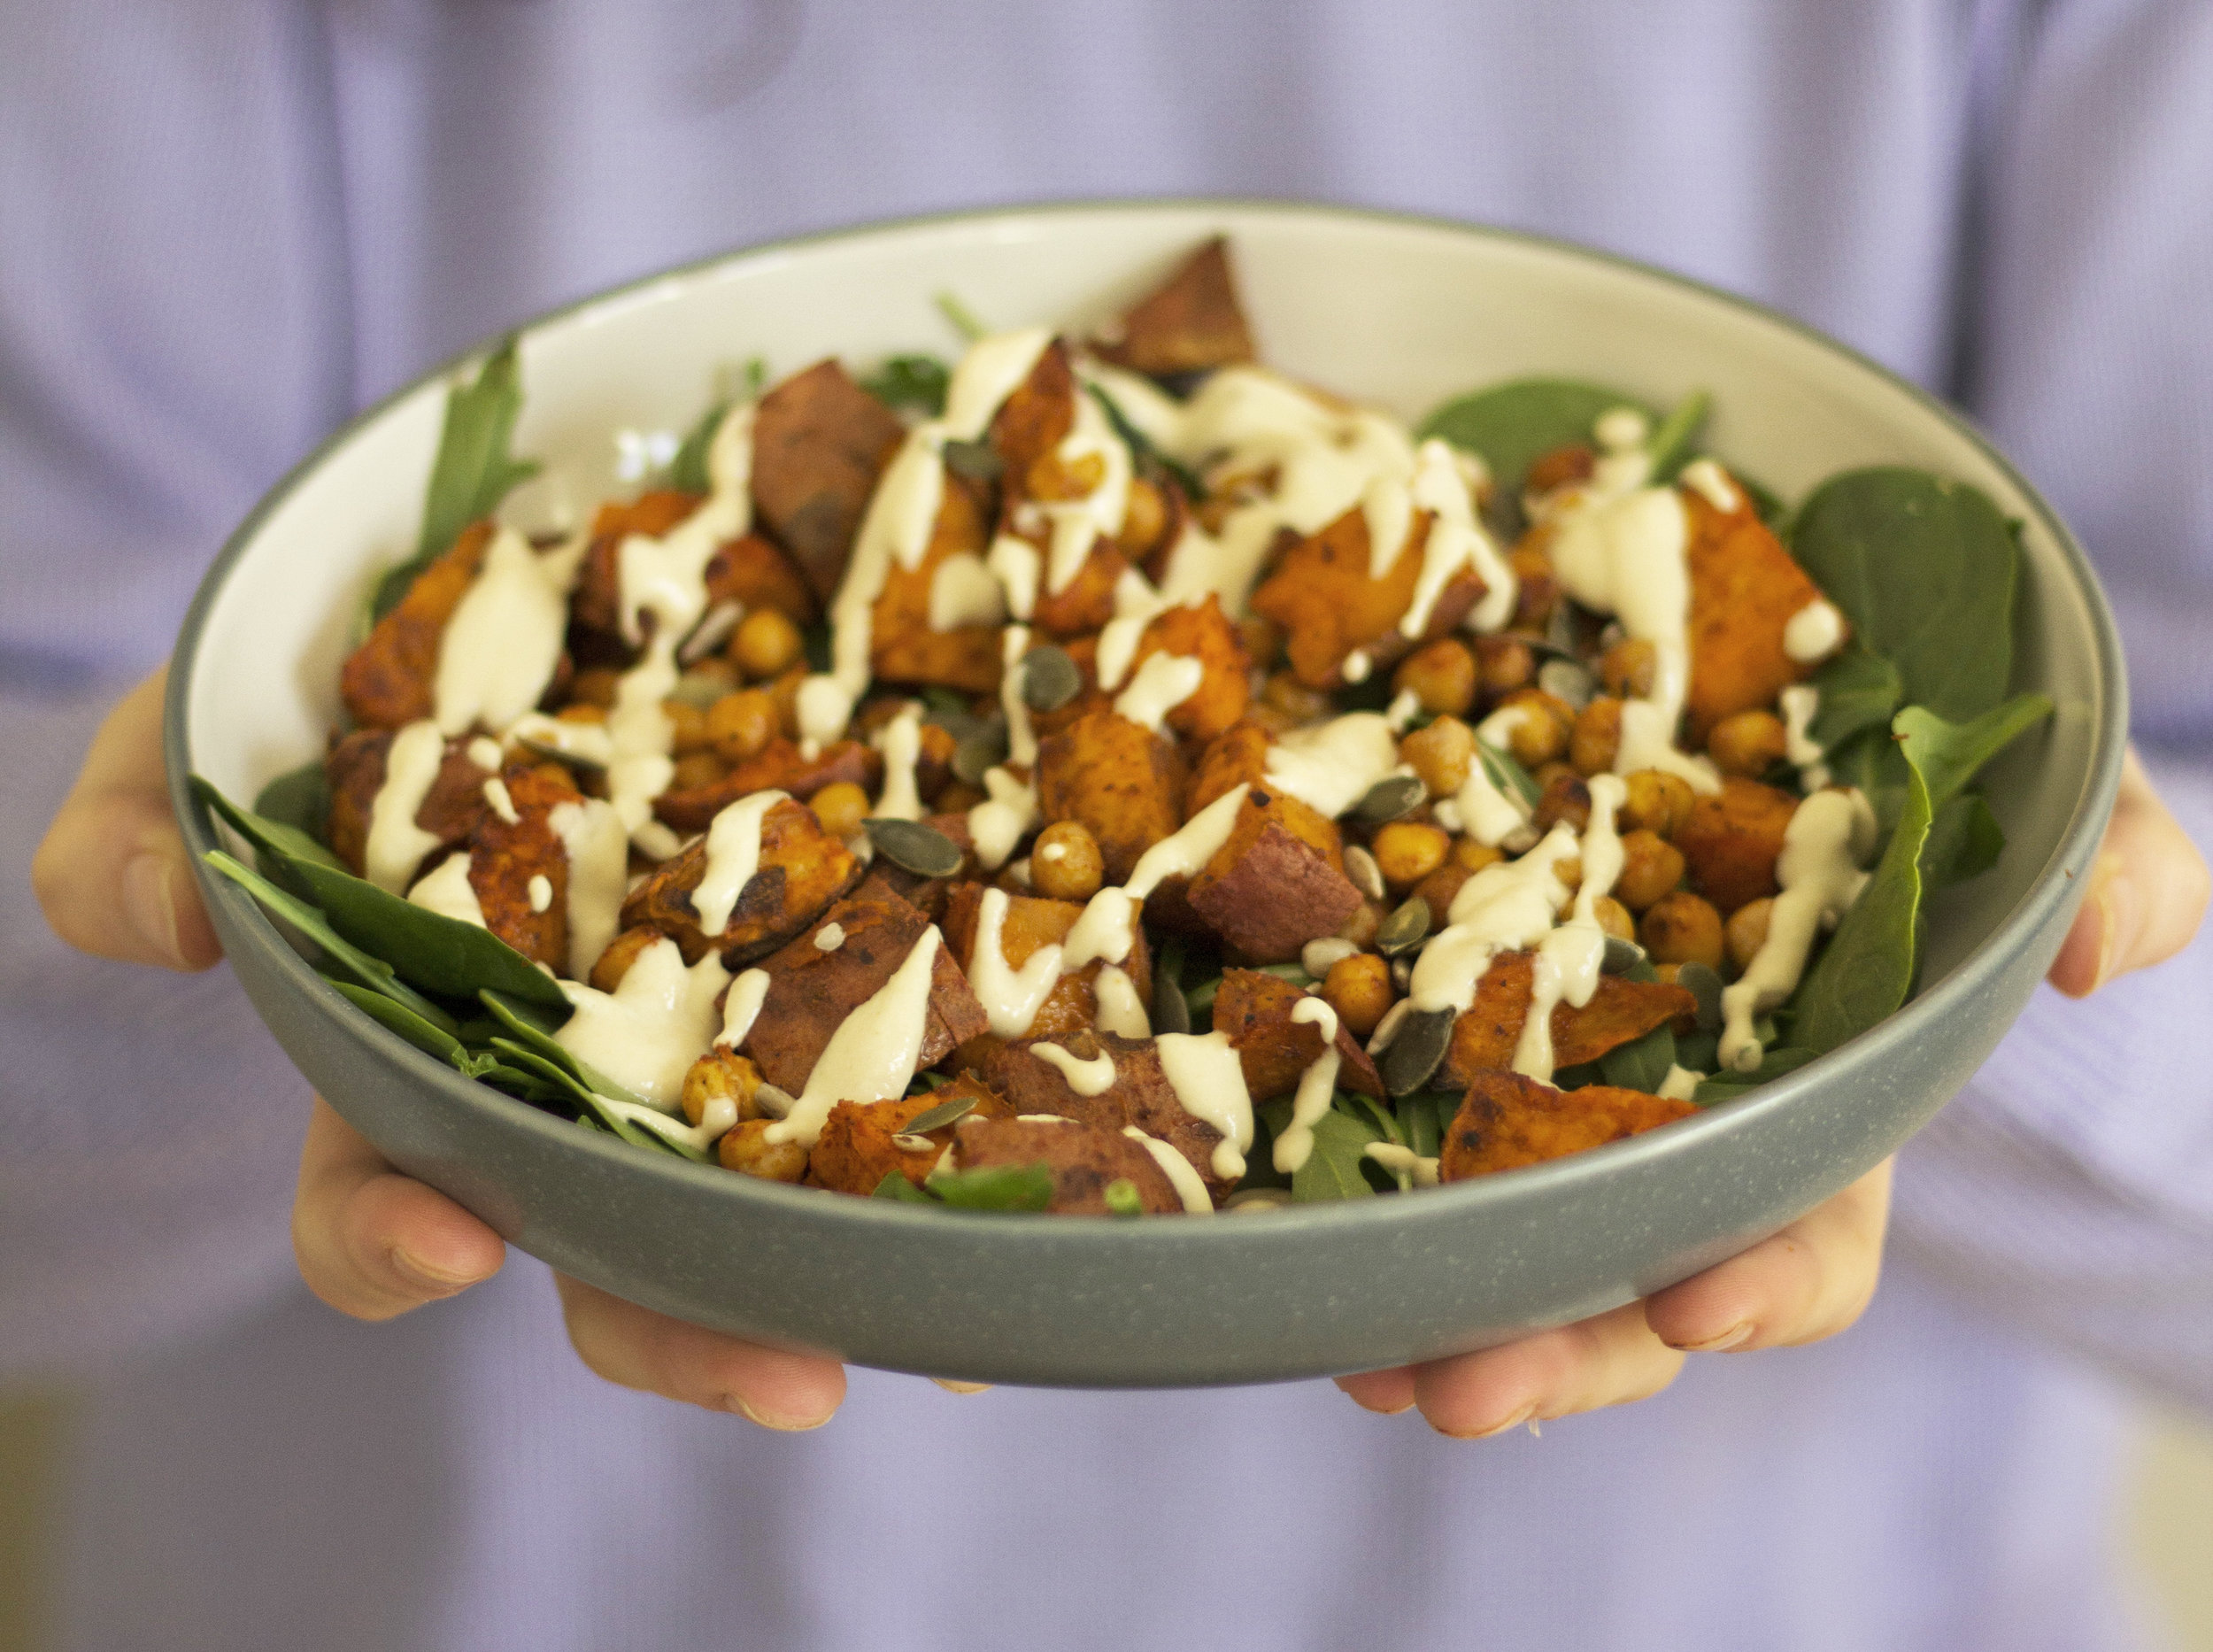 A warming and spicy salad full of health and flavour. - prep time10 mins total time35-40 mins serves 2-3